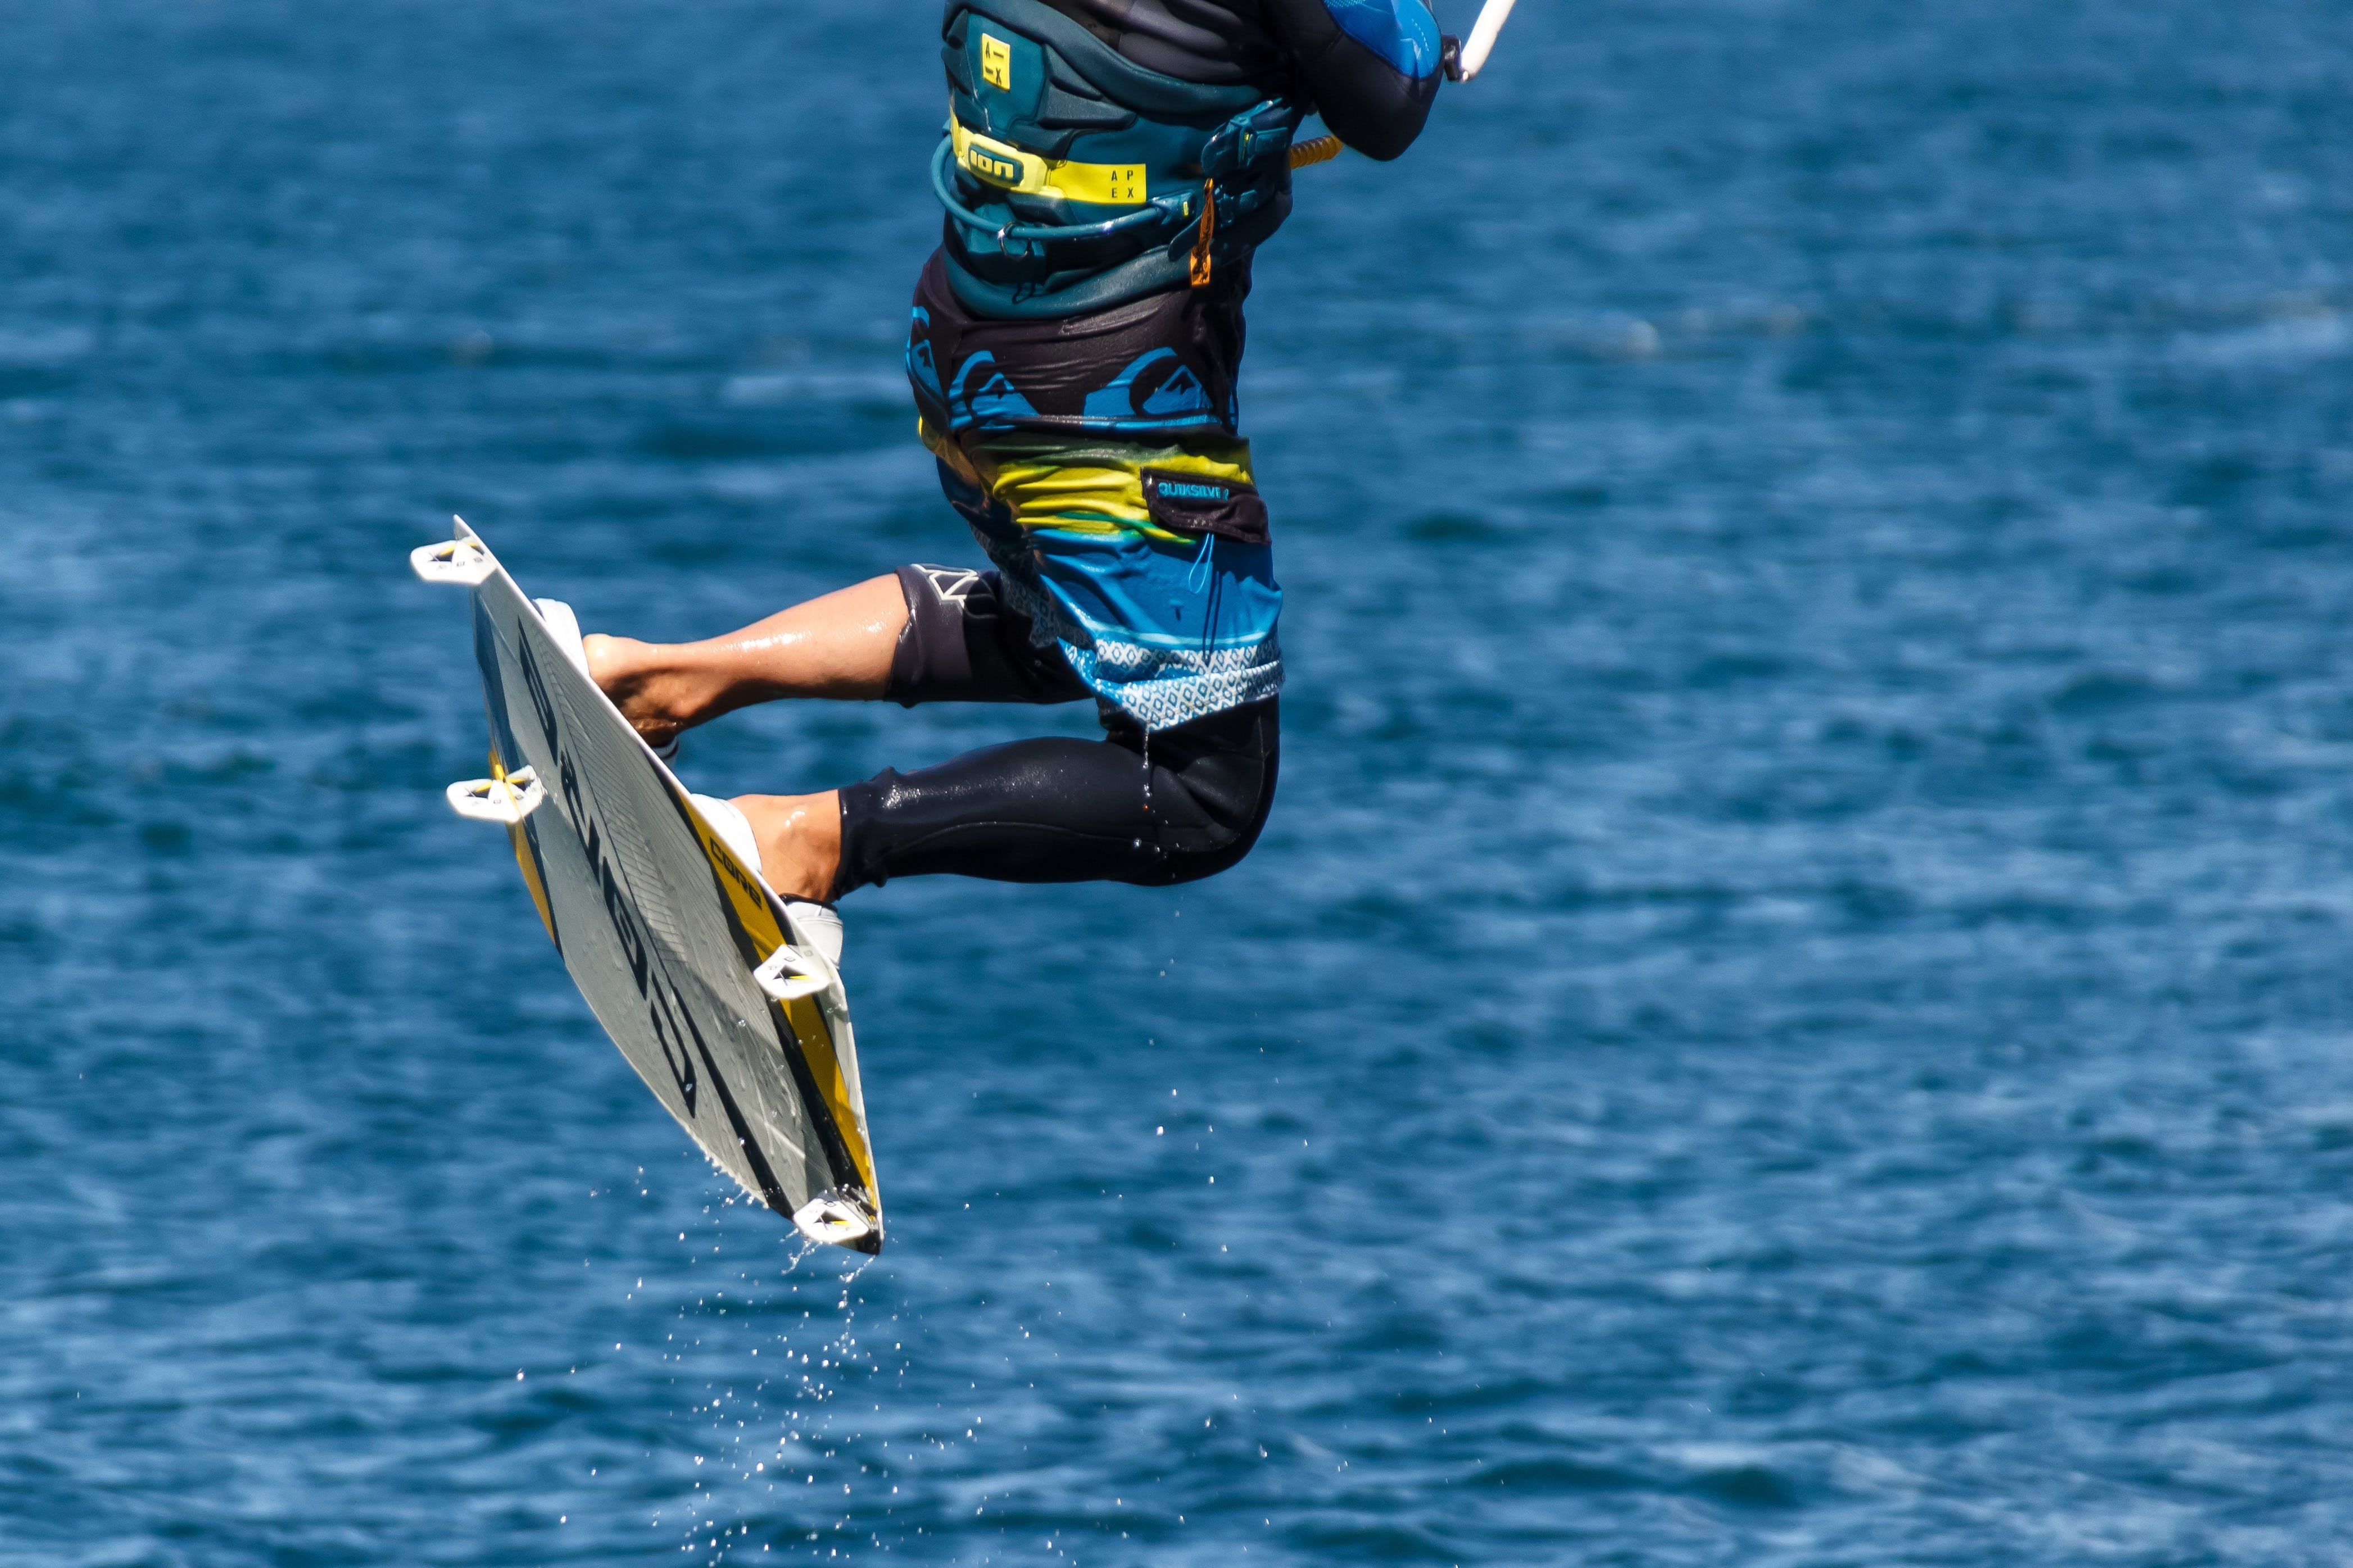 Person in Blue and Black Board Shorts on White Wake Board